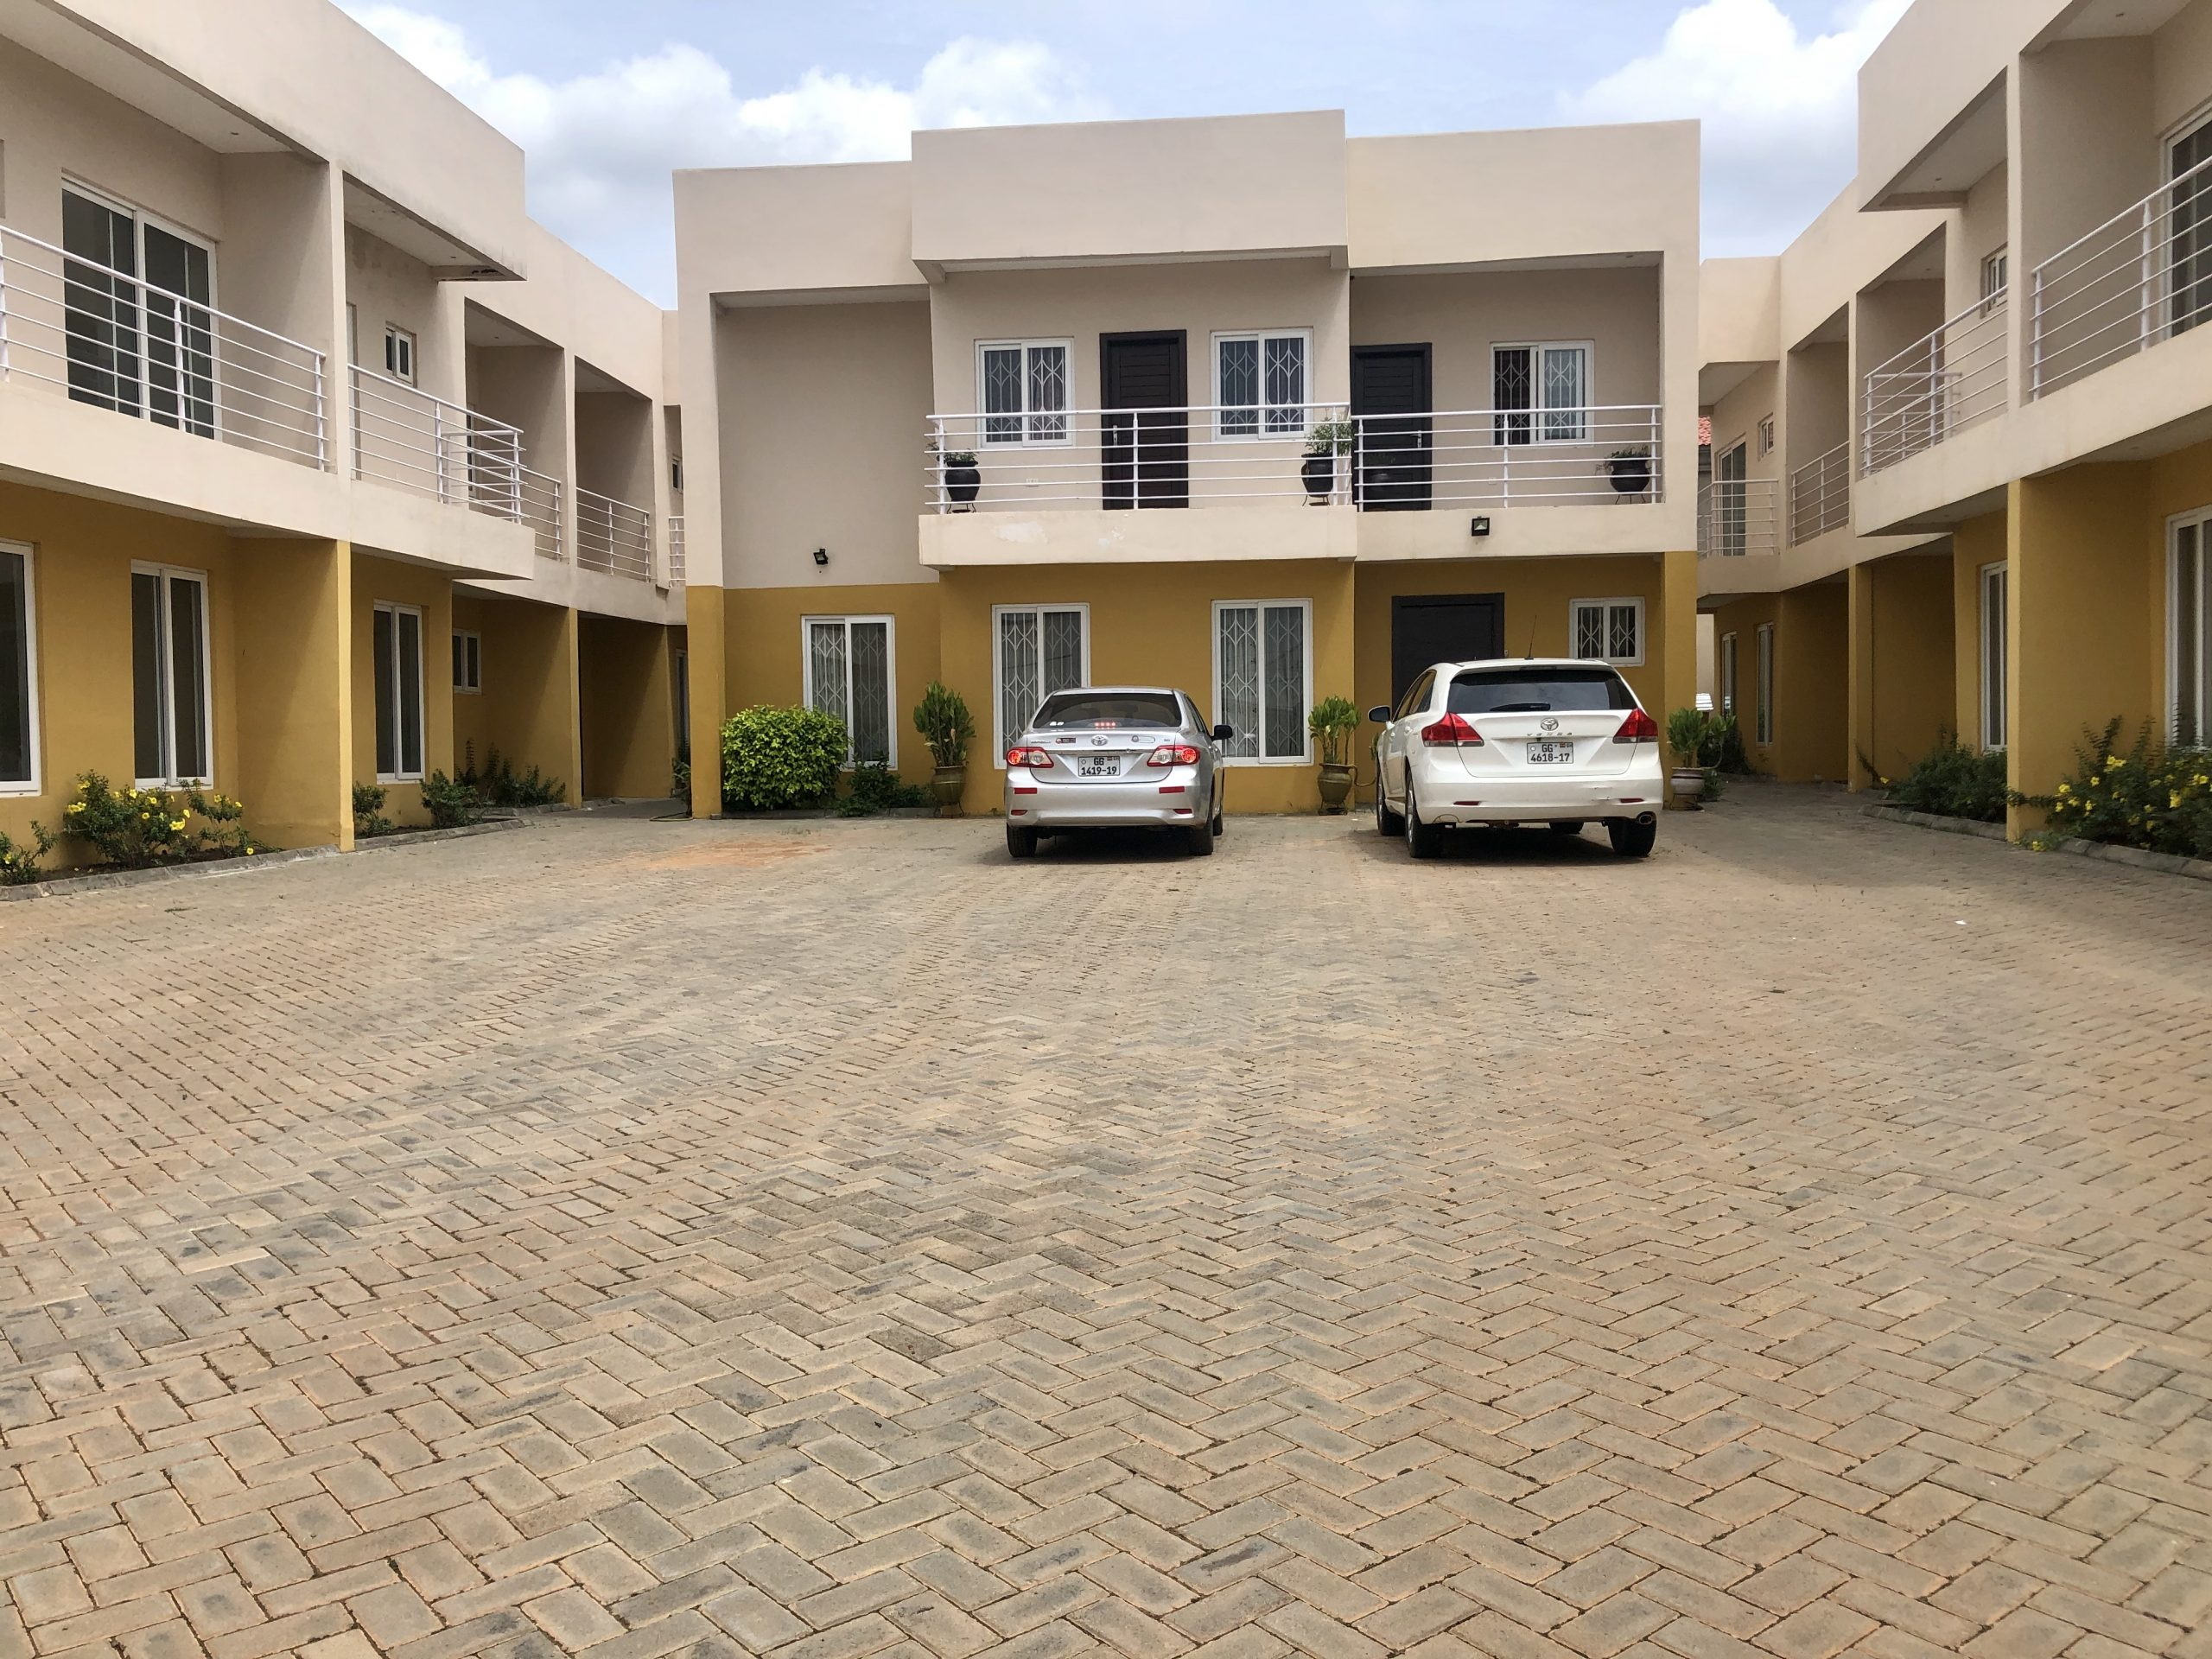 4 Bedroom Townhouse For Sale In East Airport, Accra